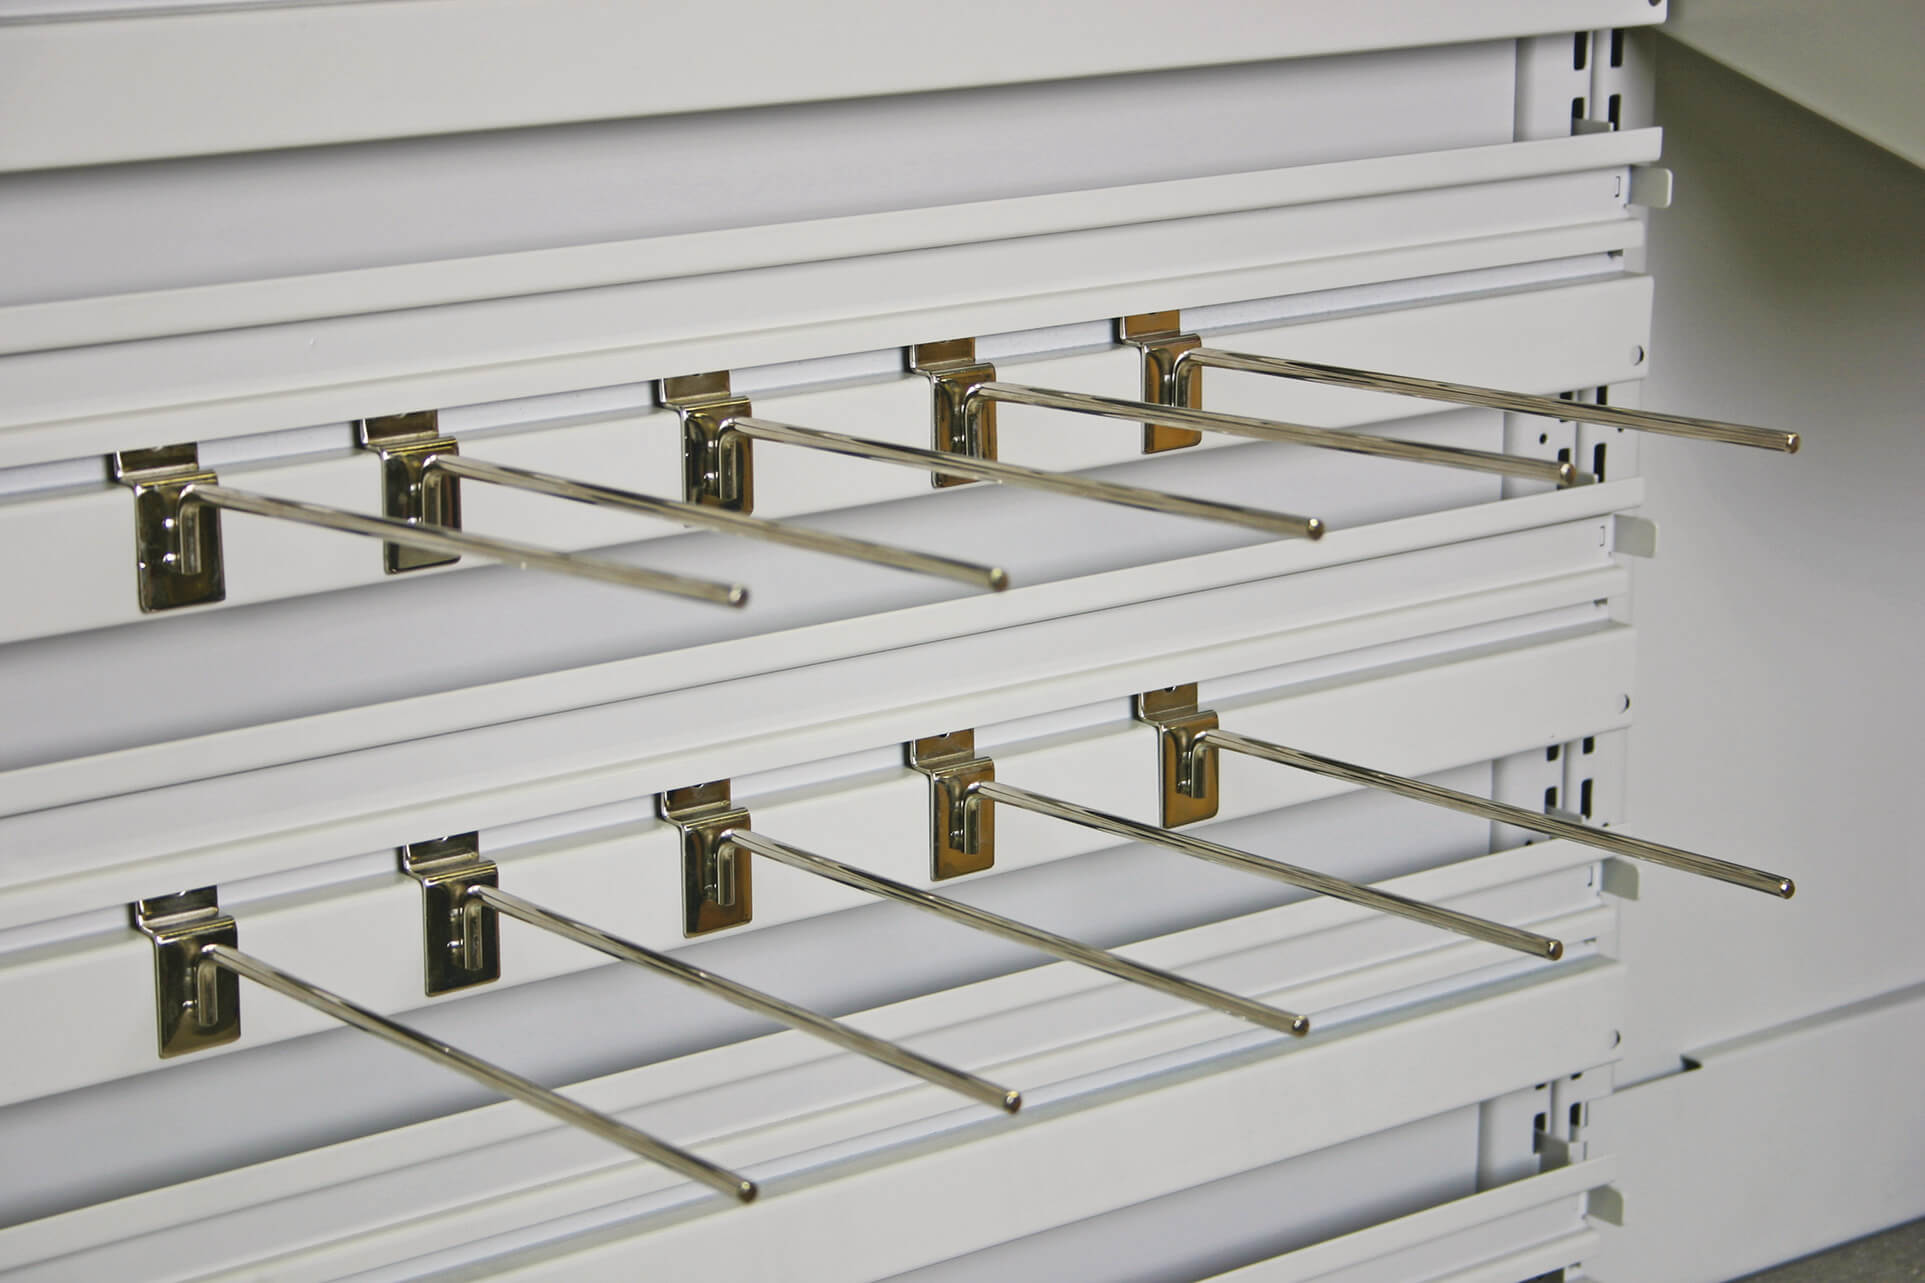 Slat-wall accessories for modular shelving and modular carts letting you hang a wide variety of items